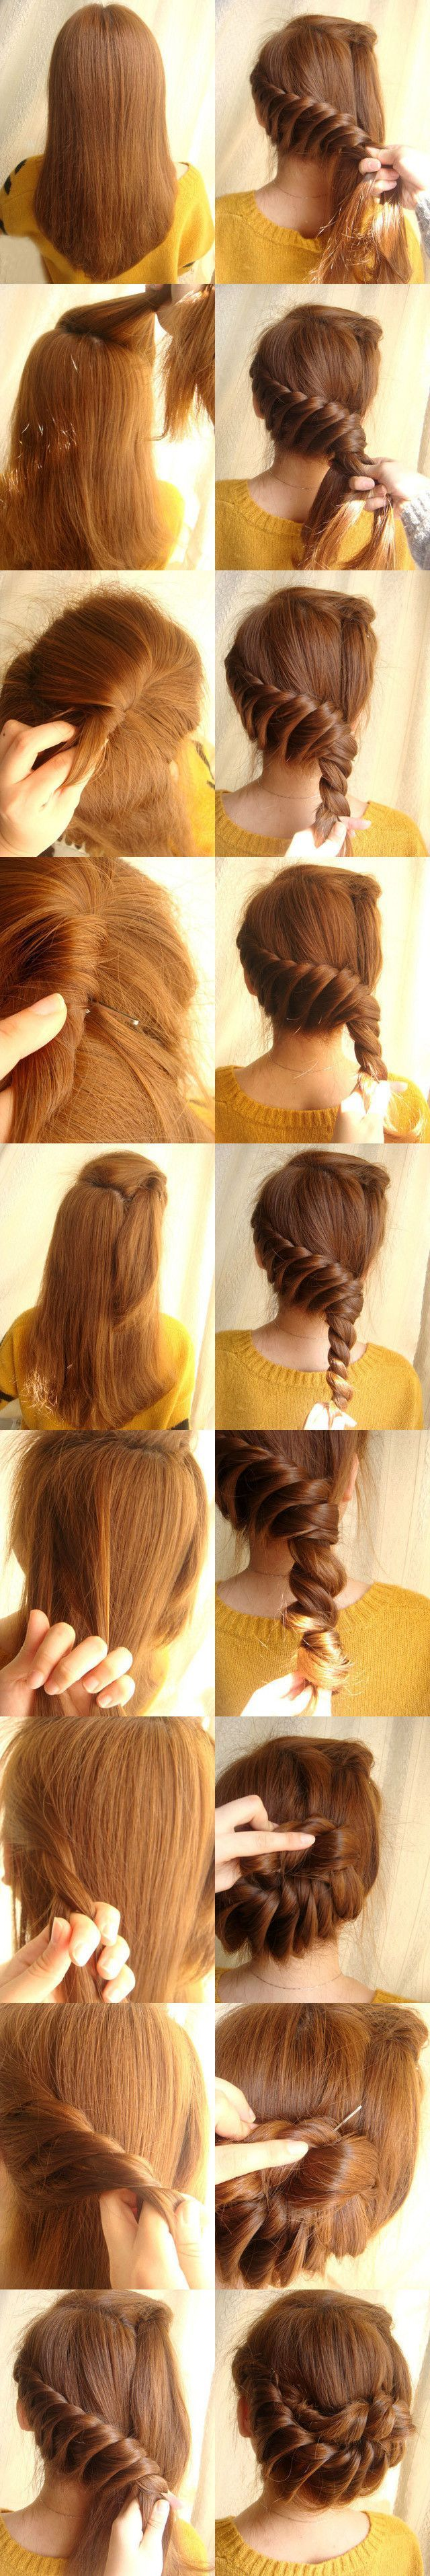 #updo #braid #hair #hairdo #hairstyles #hairstylesforlonghair #hairtips #tutorial #DIY #stepbystep #longhair #howto #practical #guide